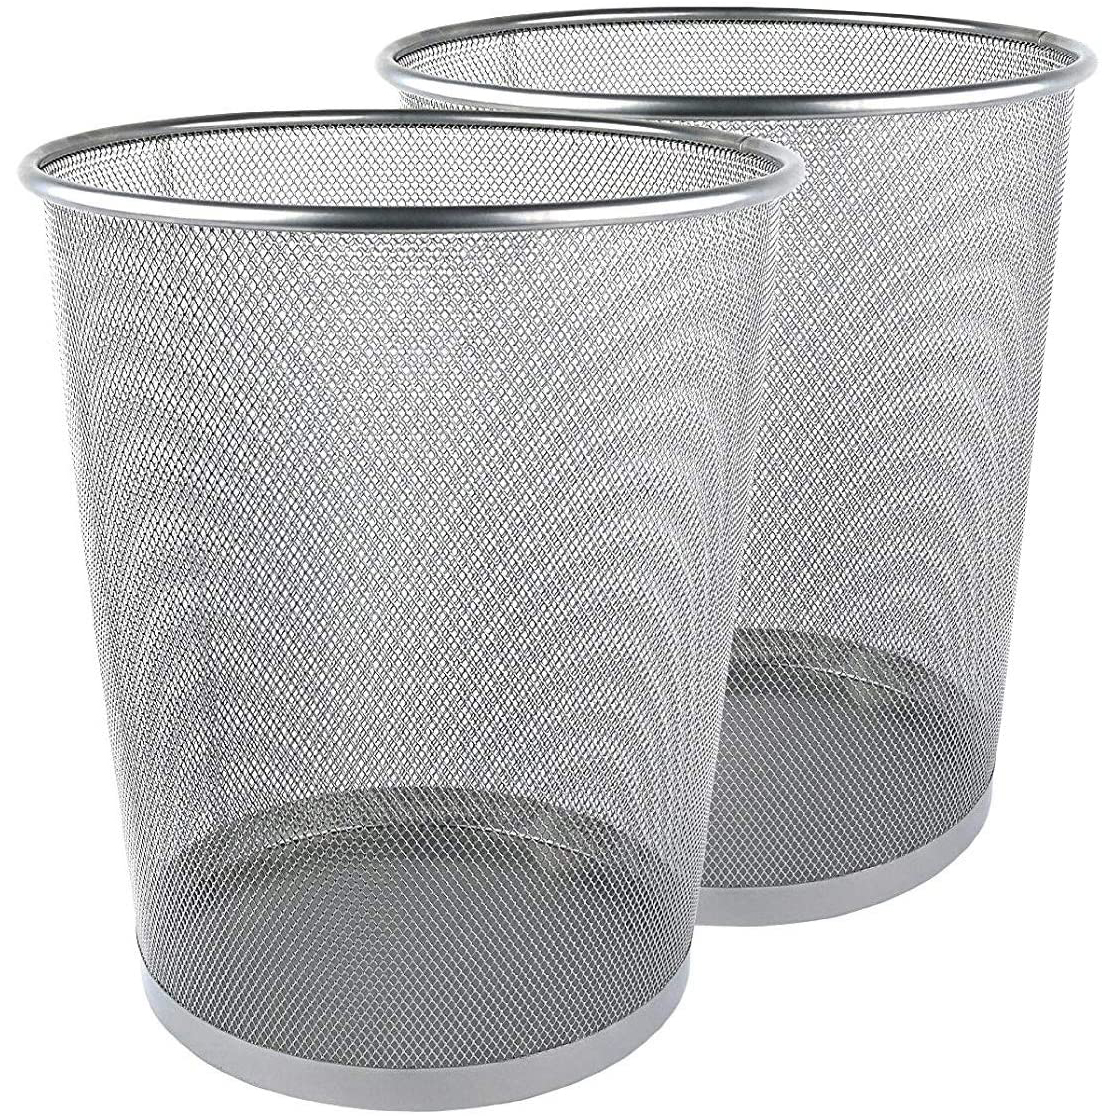 Trash Cans & Liners